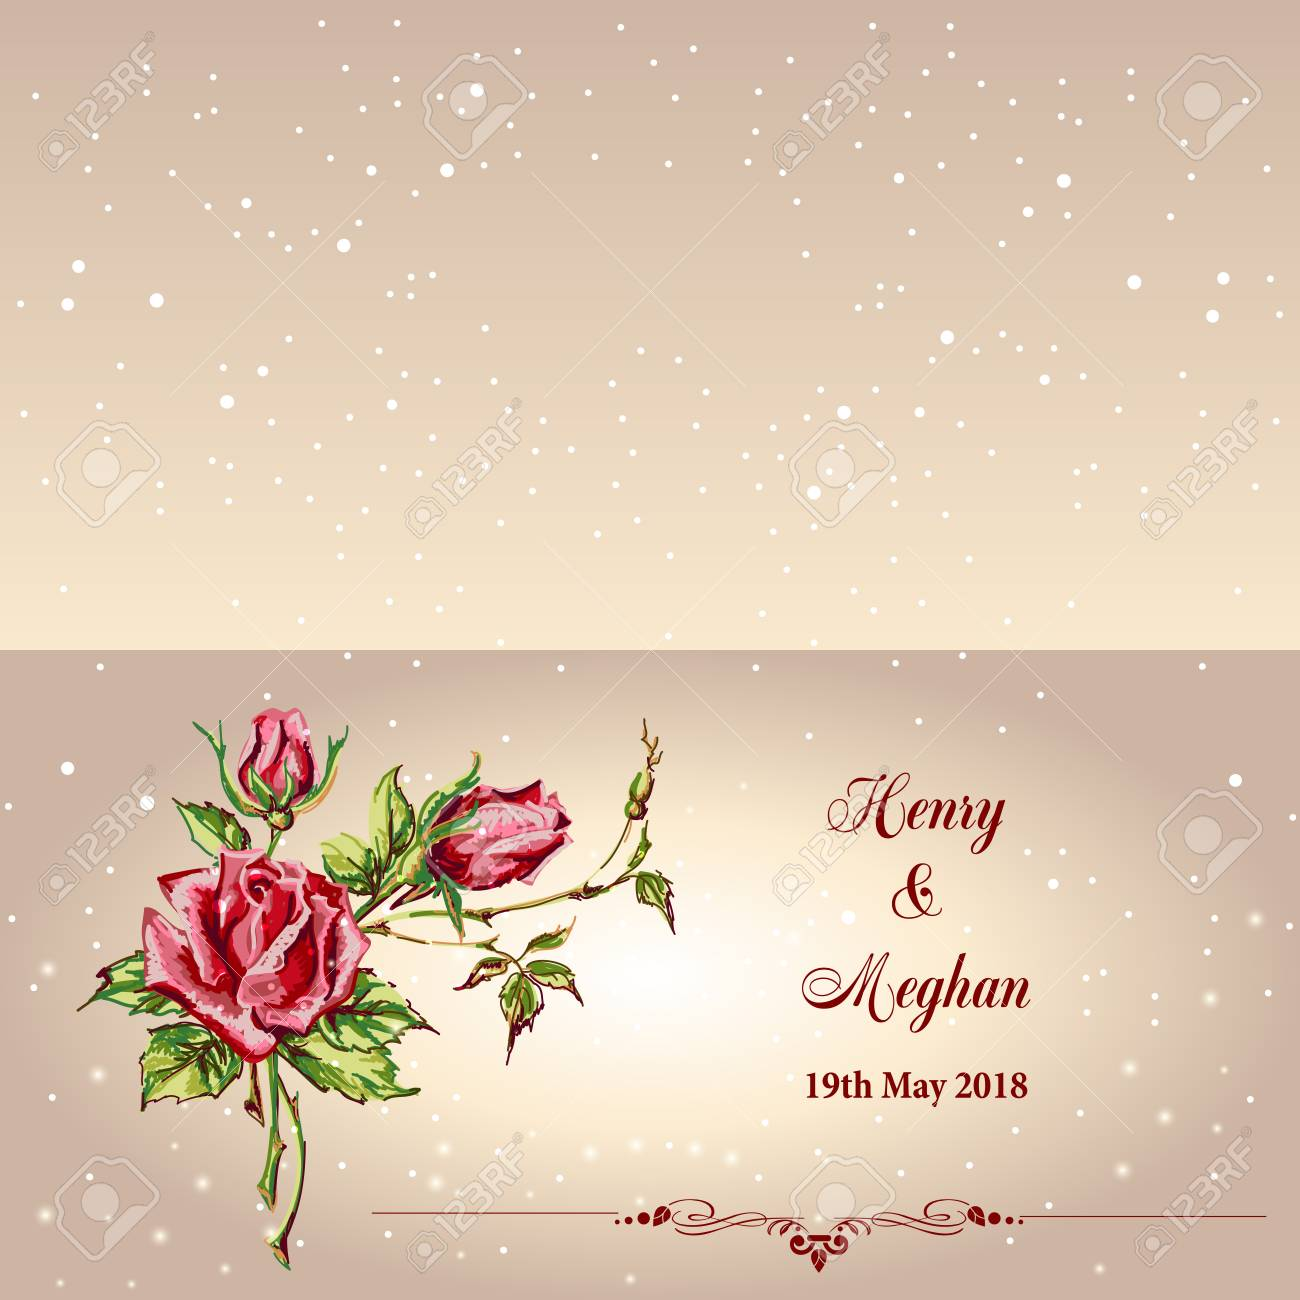 Wedding card with roses vector illustration on plain background vector wedding card with roses vector illustration on plain background m4hsunfo